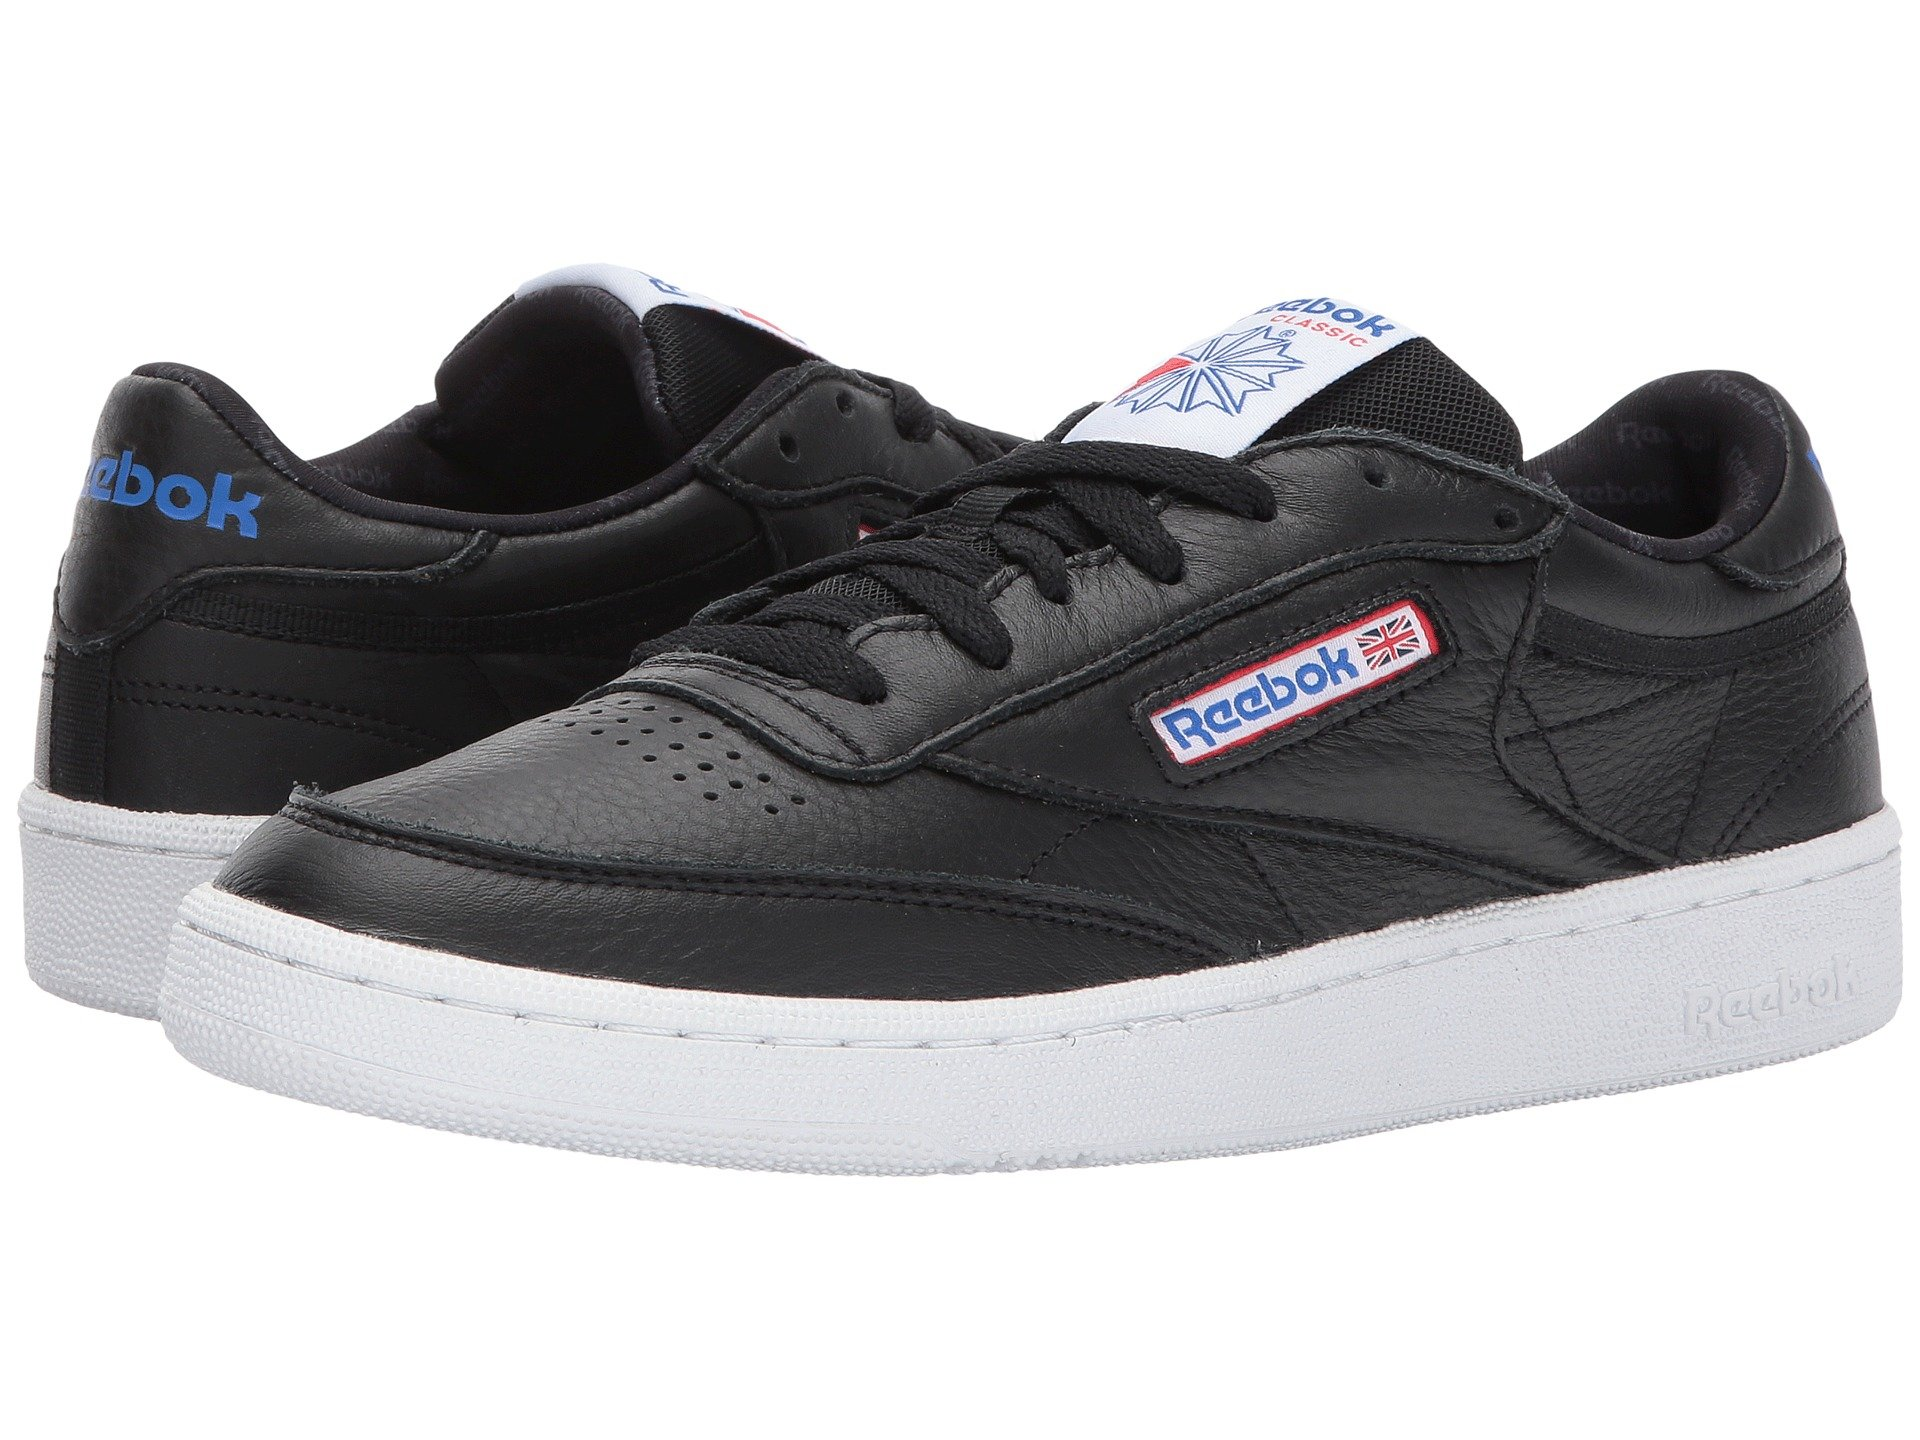 91aa429886a Reebok Club C 85 So In Black White Vital Blue Primal Red Ash Grey ...